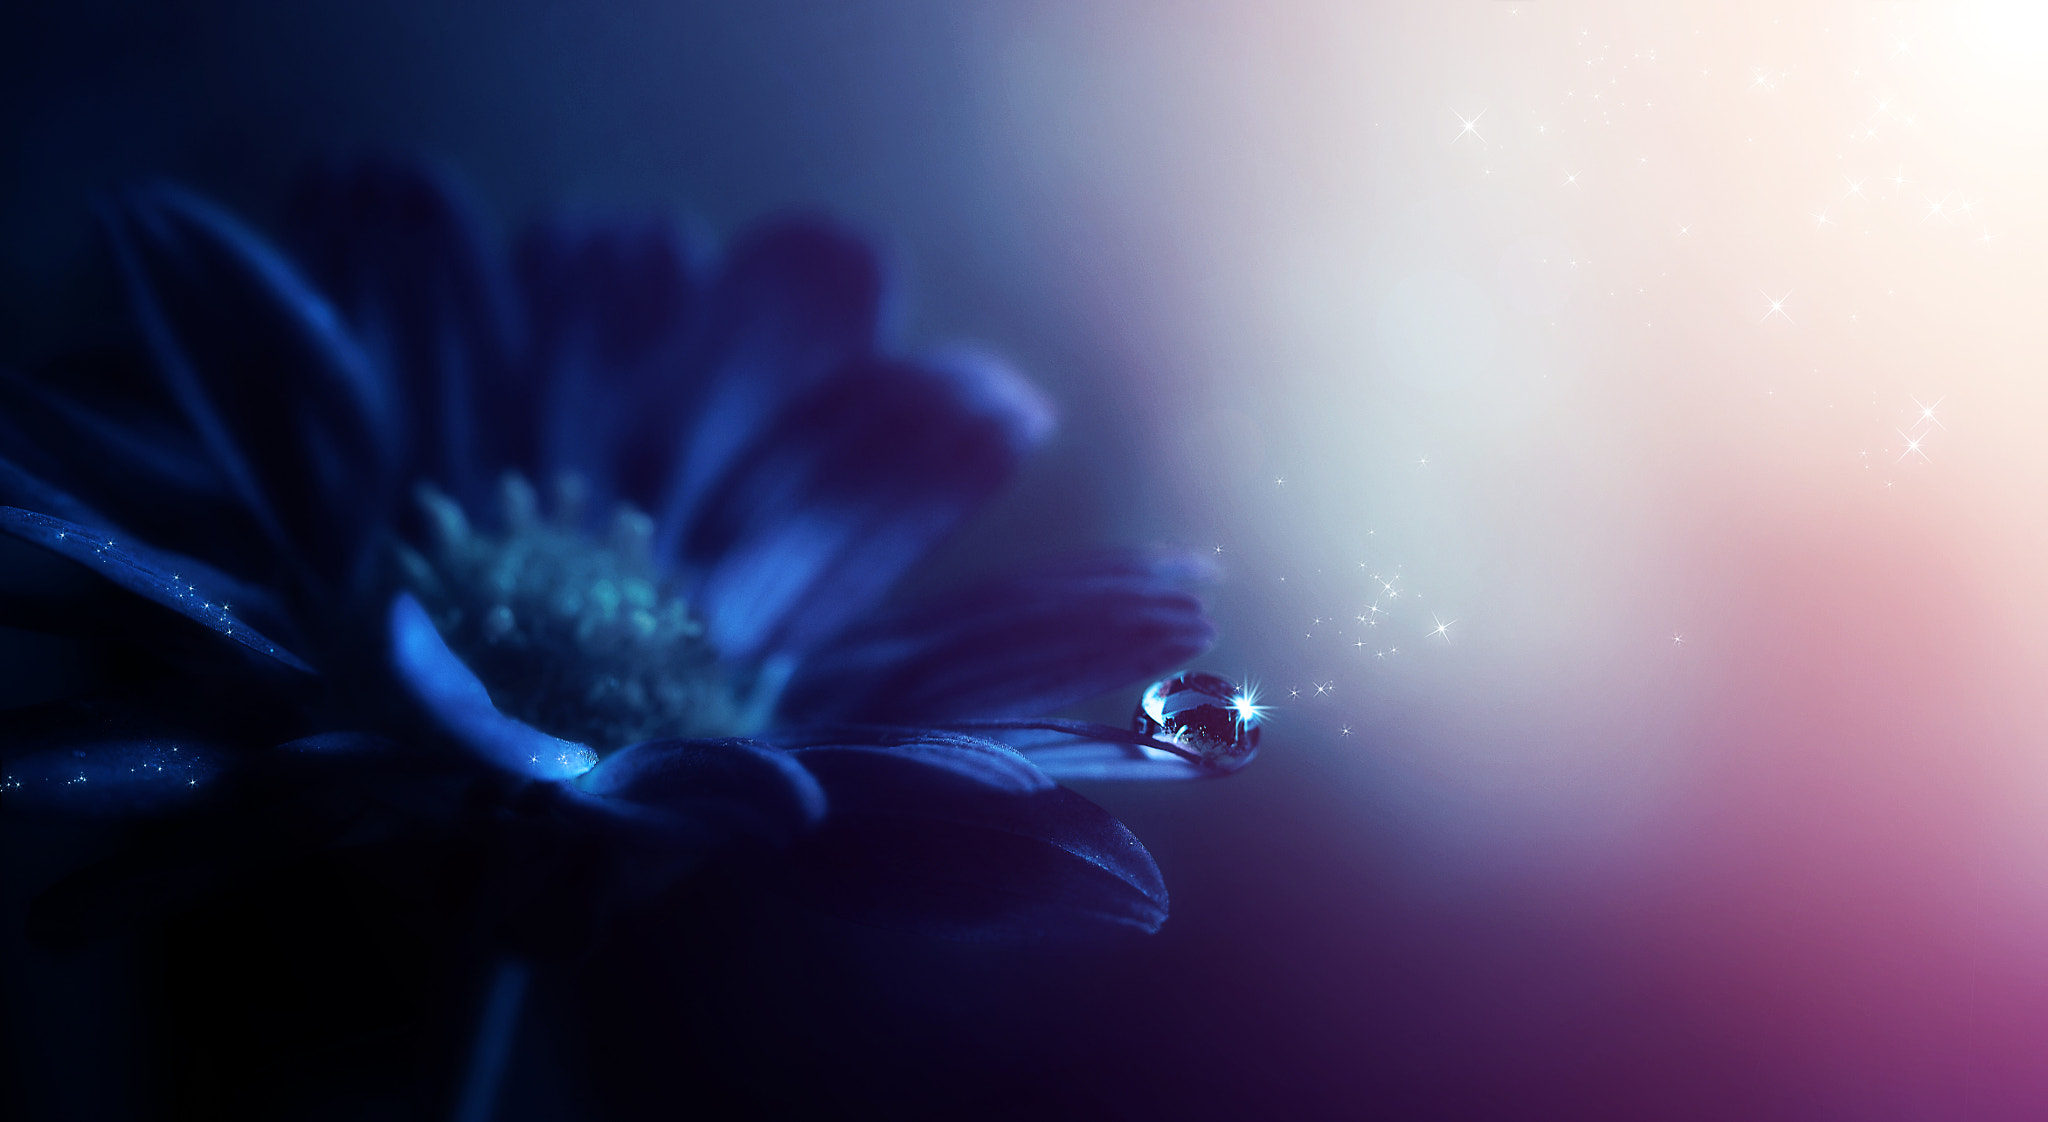 Photograph Morning Flower by Kevin Carden on 500px